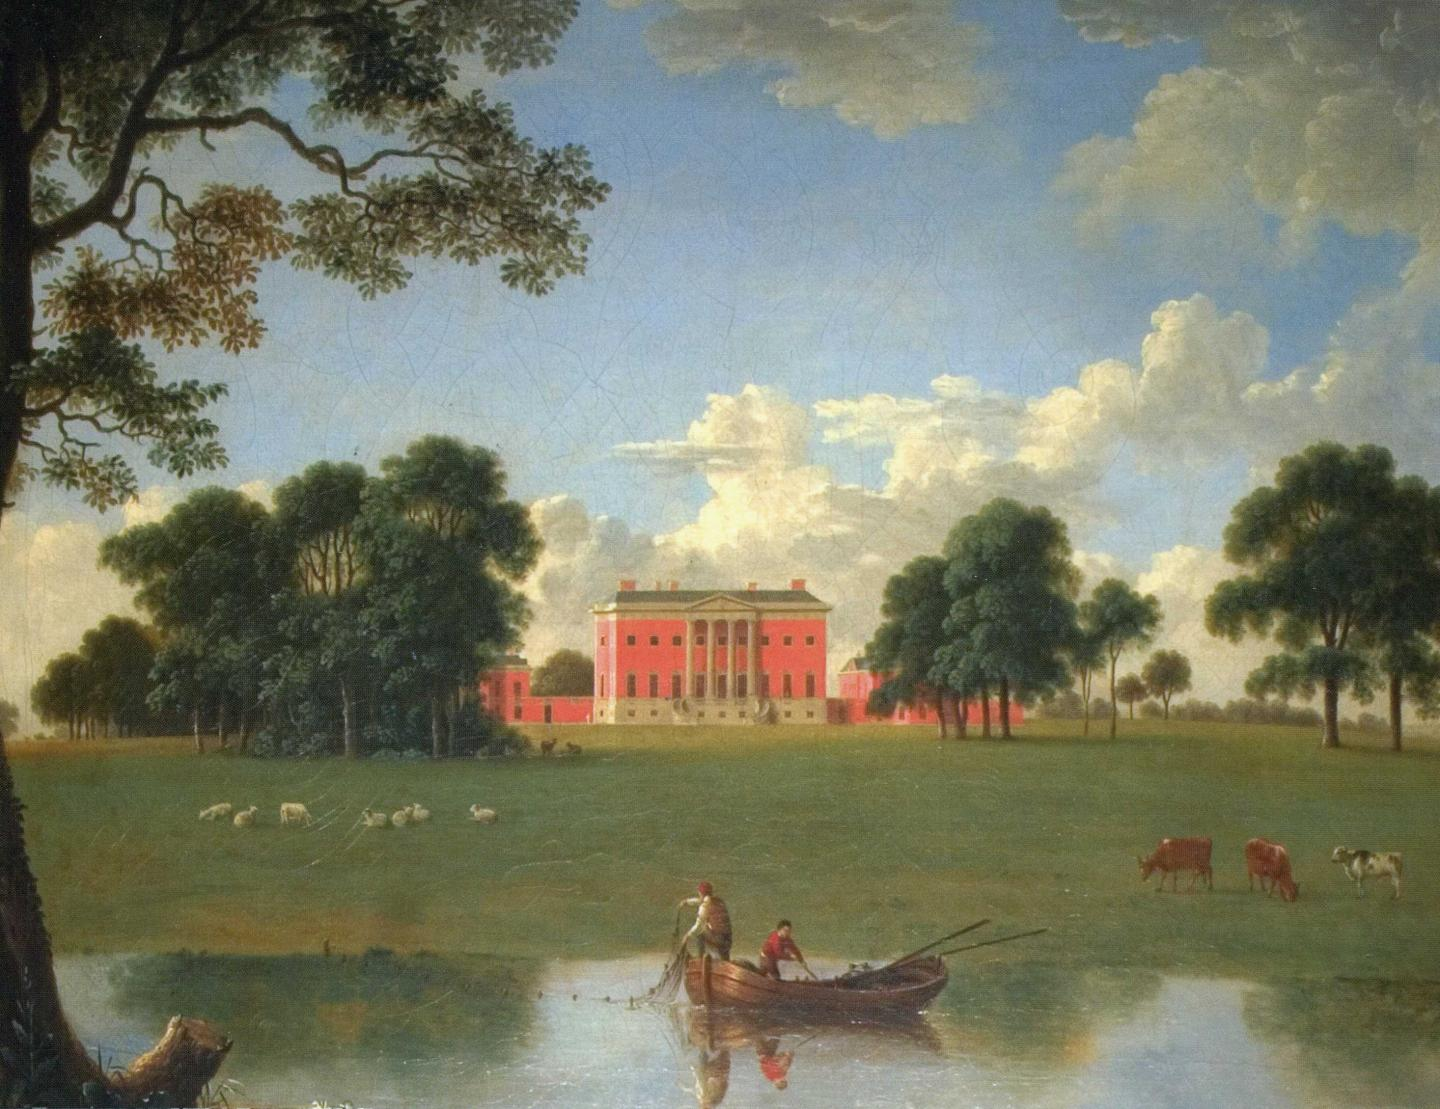 Two people fishing from a floating boat, cows and sheep grazing in a field, a red building and trees, and clouds in a blue sky.